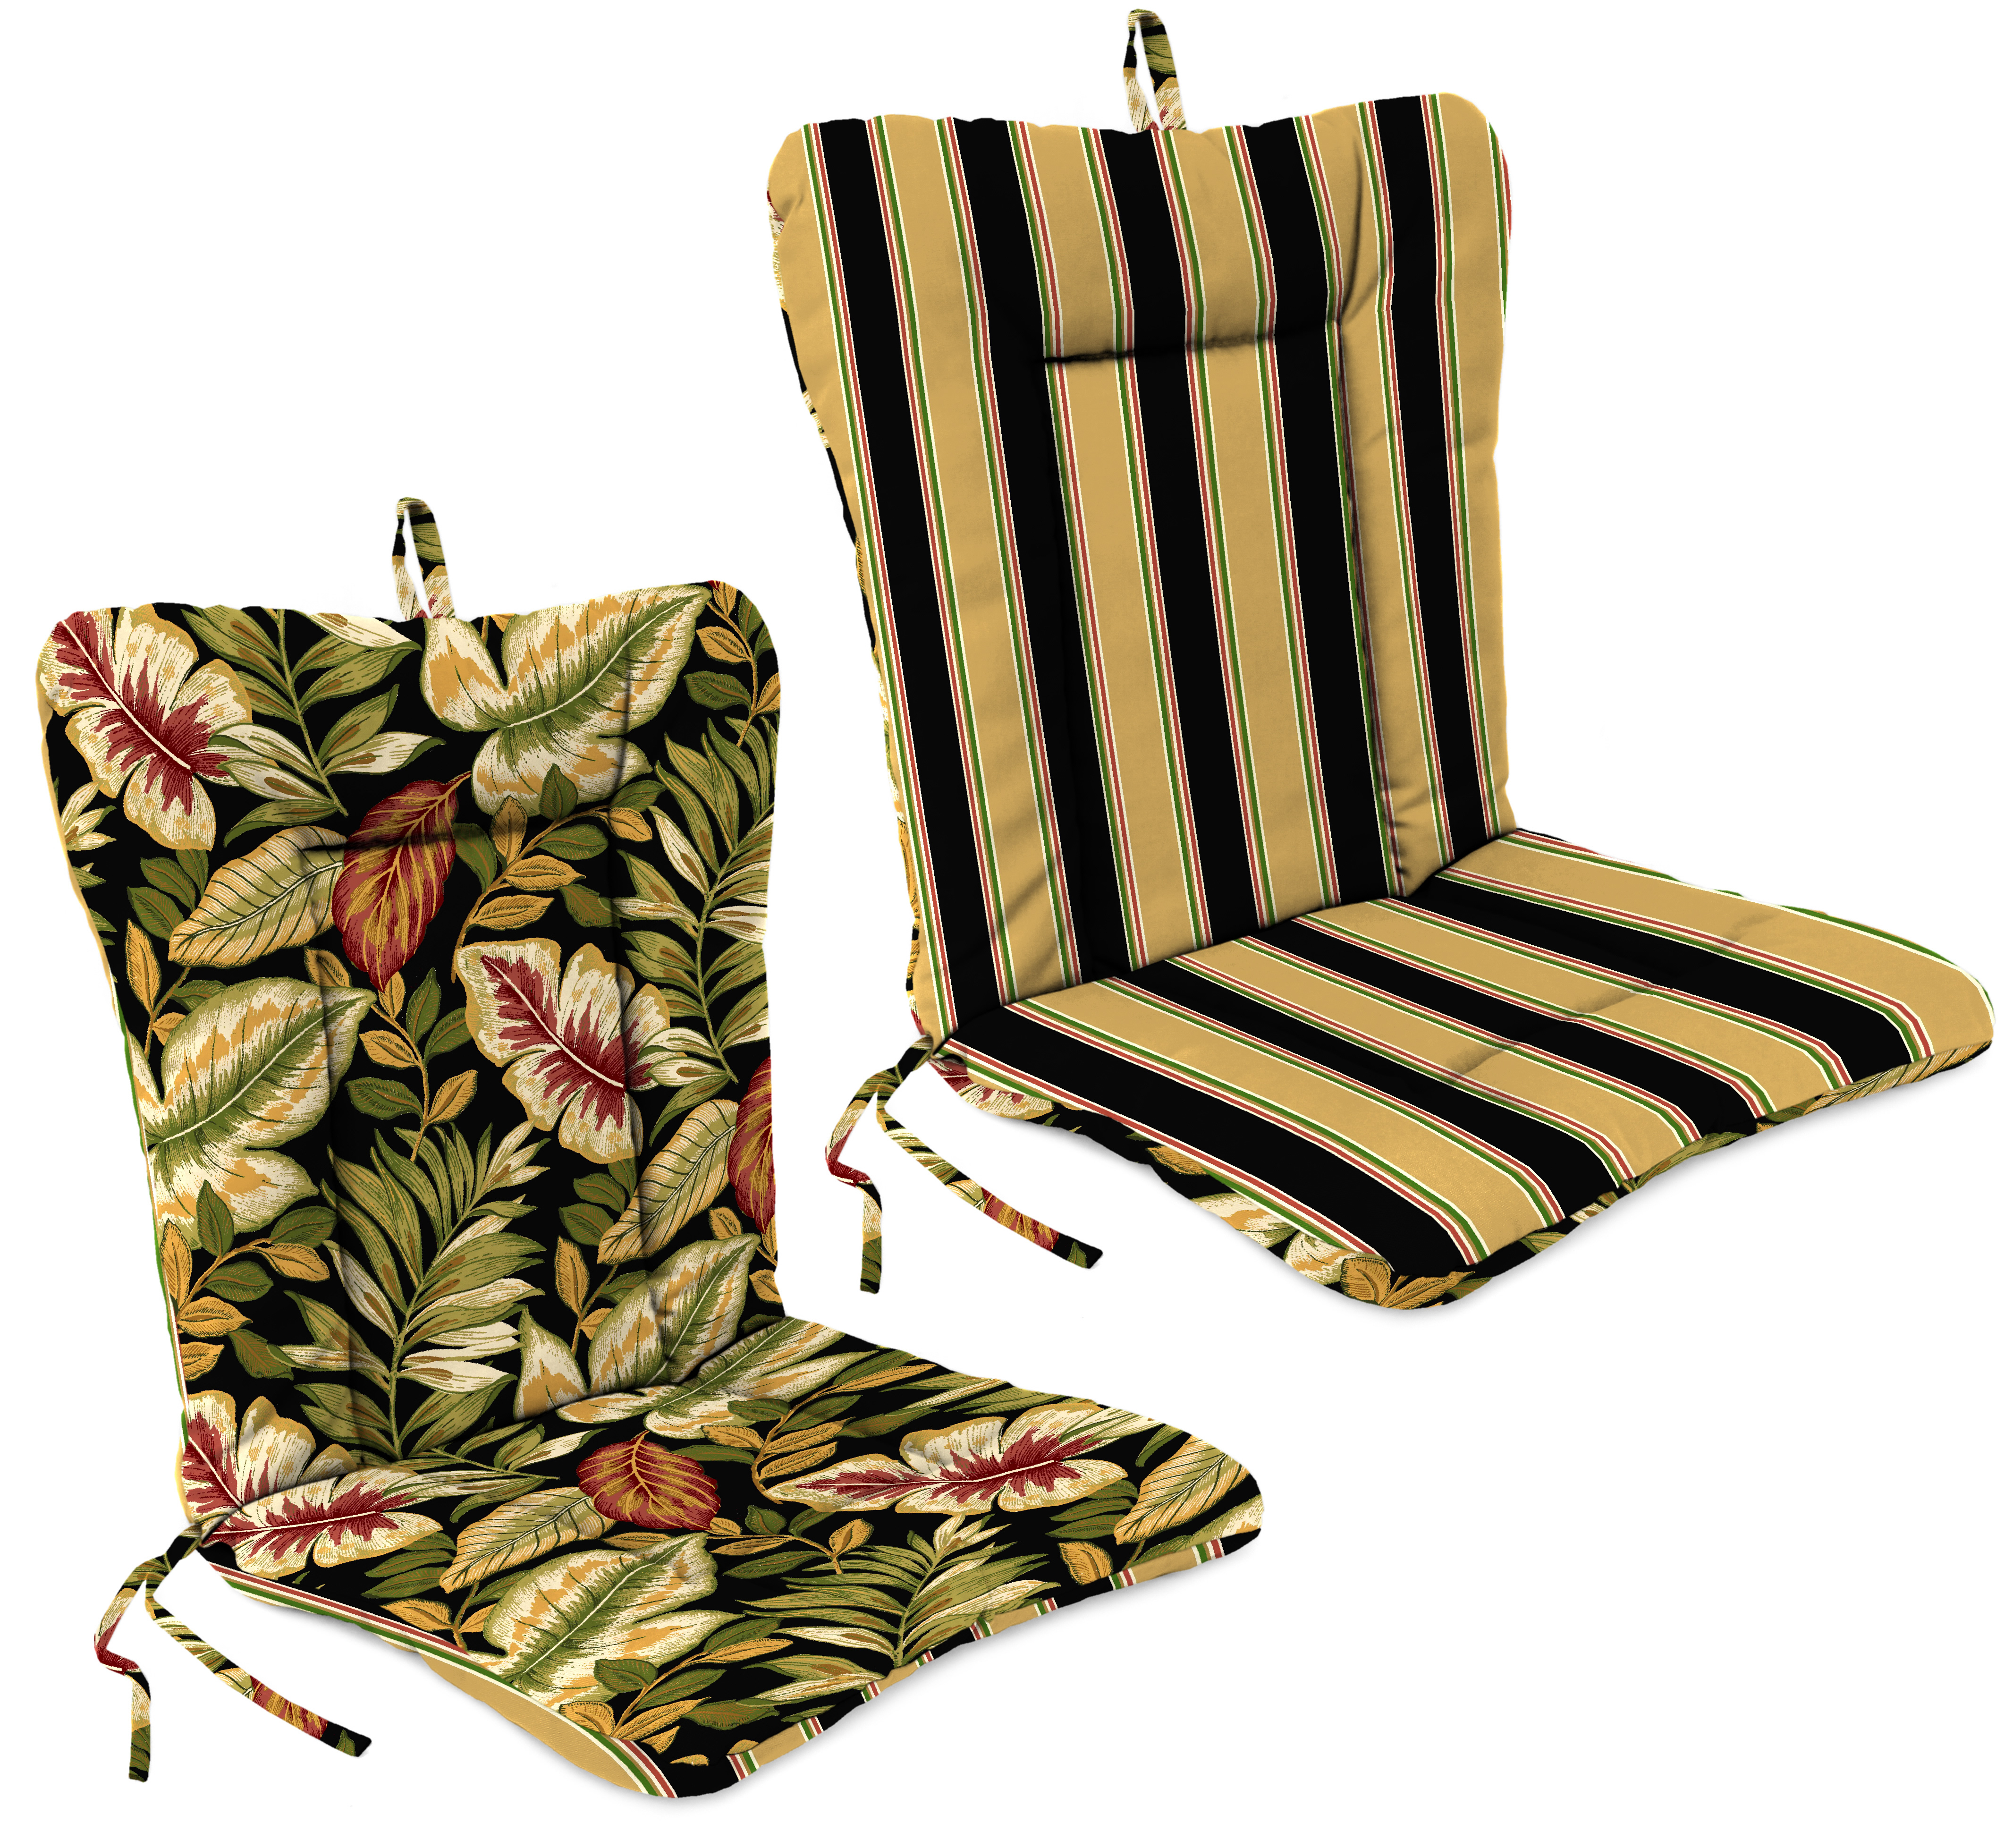 Jordan Manufacturing Co., Inc. Dinalounge Patio Chair Cushion in Coach Stripe Black/Twilight Leaves Black